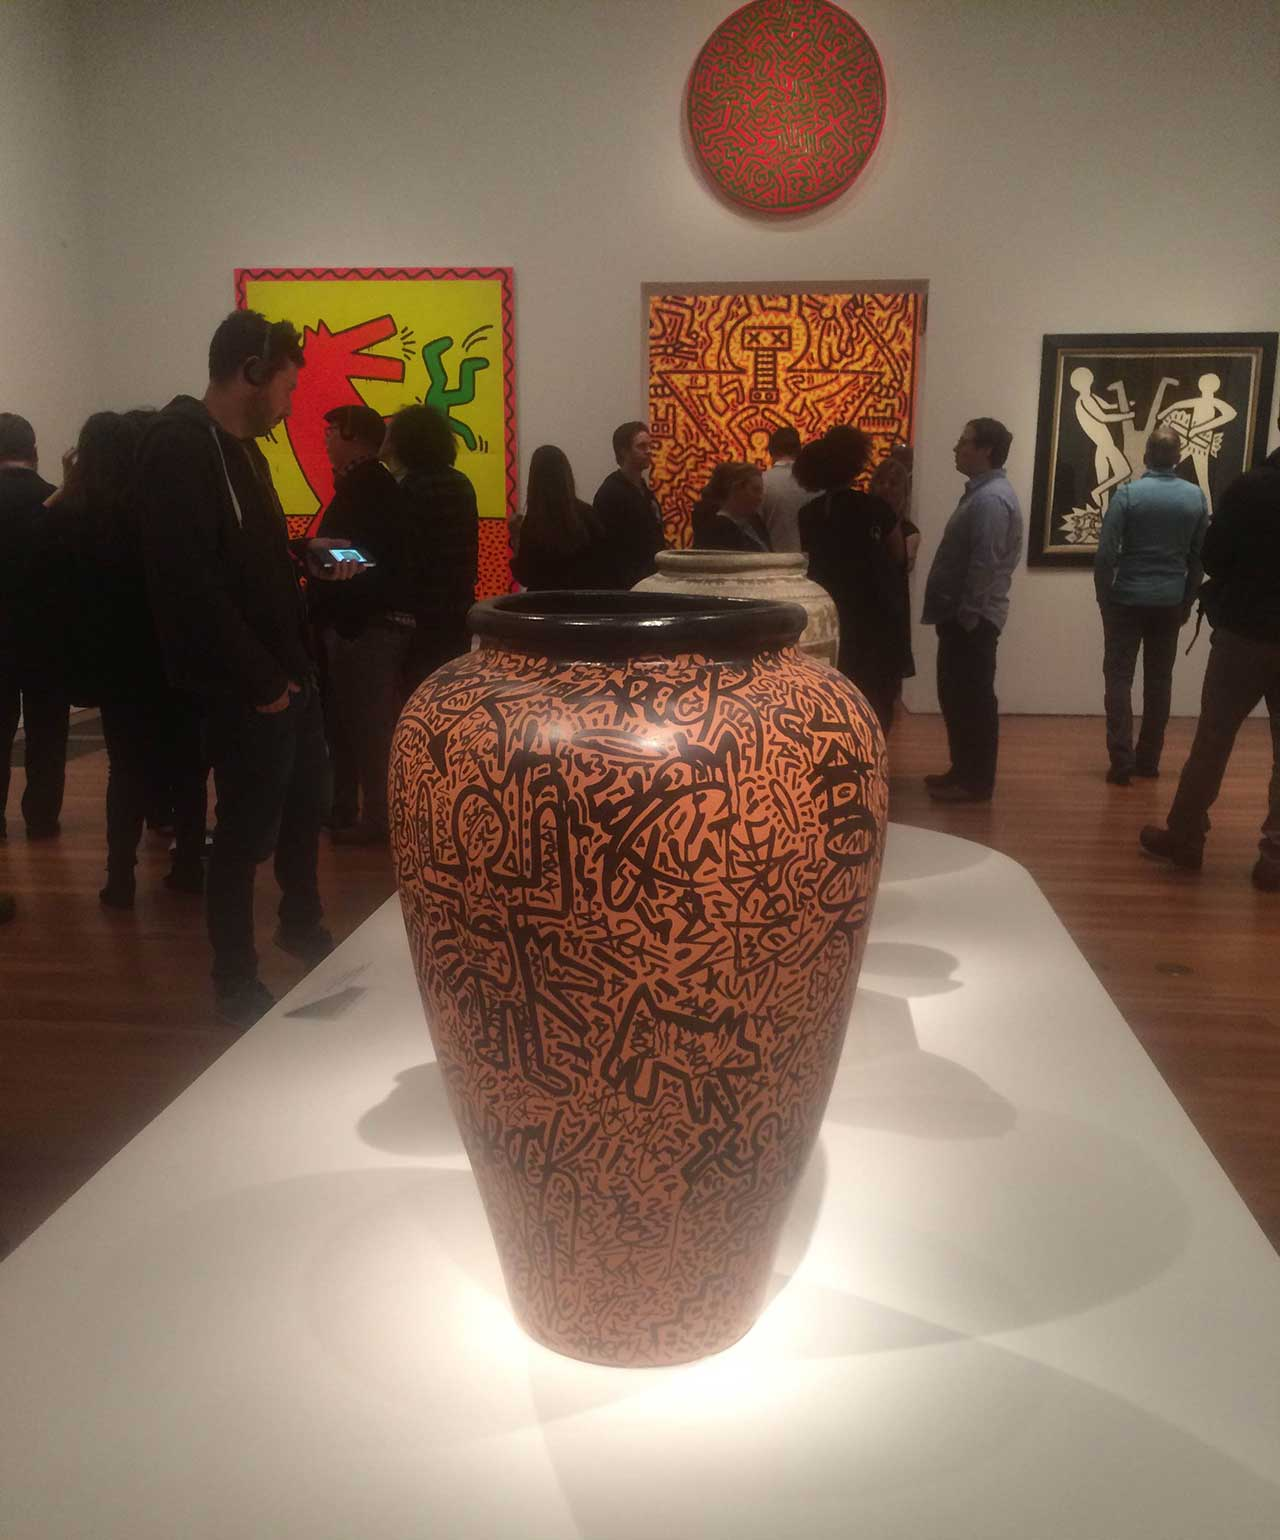 Installation view, 'Keith Haring: The Political Line' at the de Young Museum (all photos by the author for Hyperallergic unless otherwise noted)